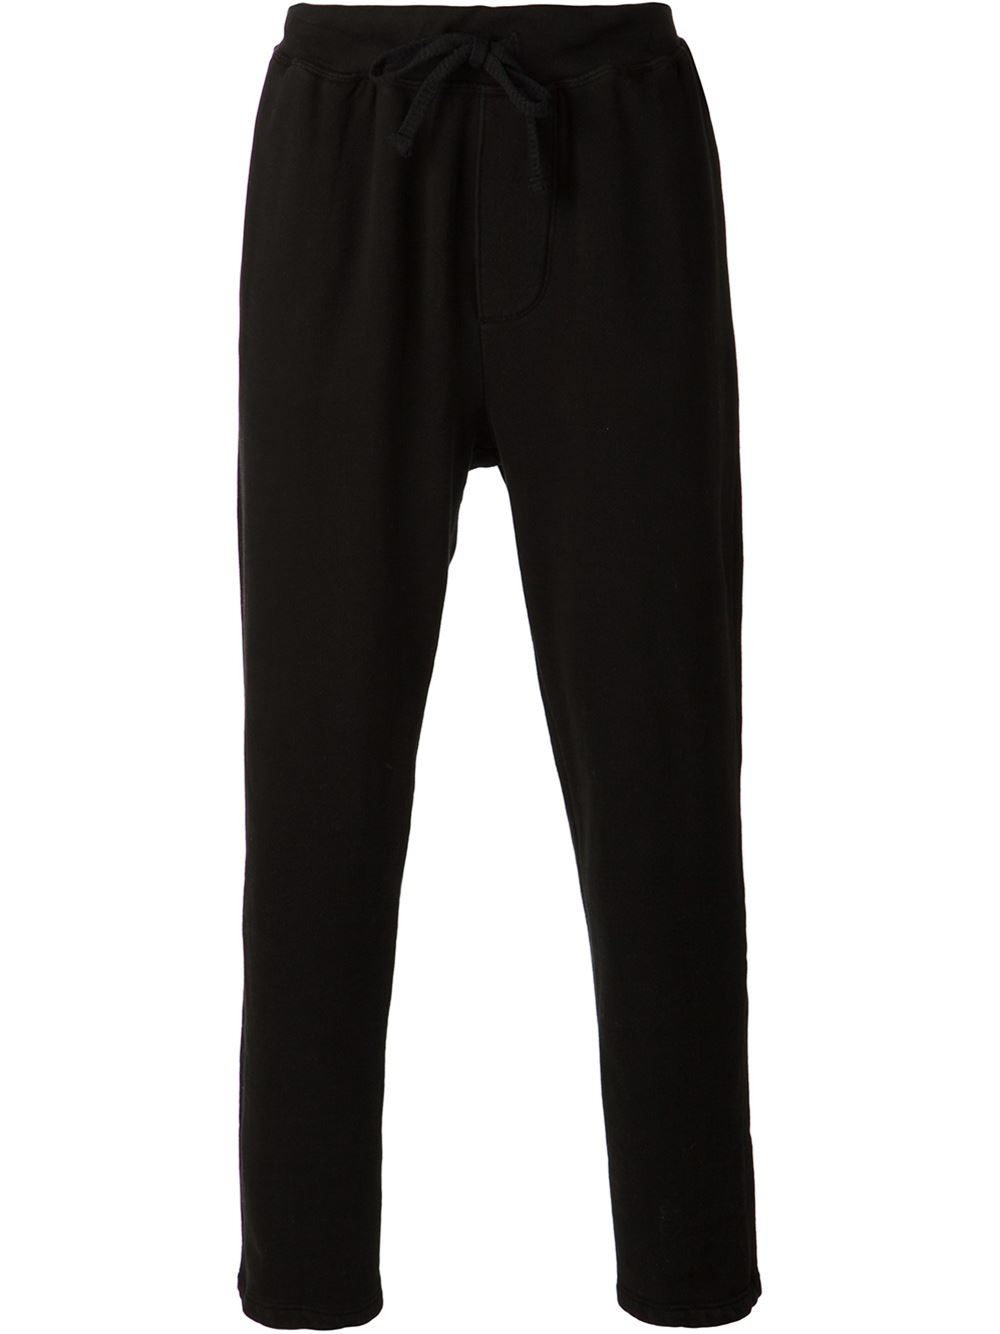 Find mens sweatpants with fly and pockets at ShopStyle. Shop the latest collection of mens sweatpants with fly and pockets from the most popular. Men's Sweatpants With Back Pockets Sweatpants With Front Pockets Men Mens Lightweight Sweatpants With Pockets Mens Button Fly Sweatpants.